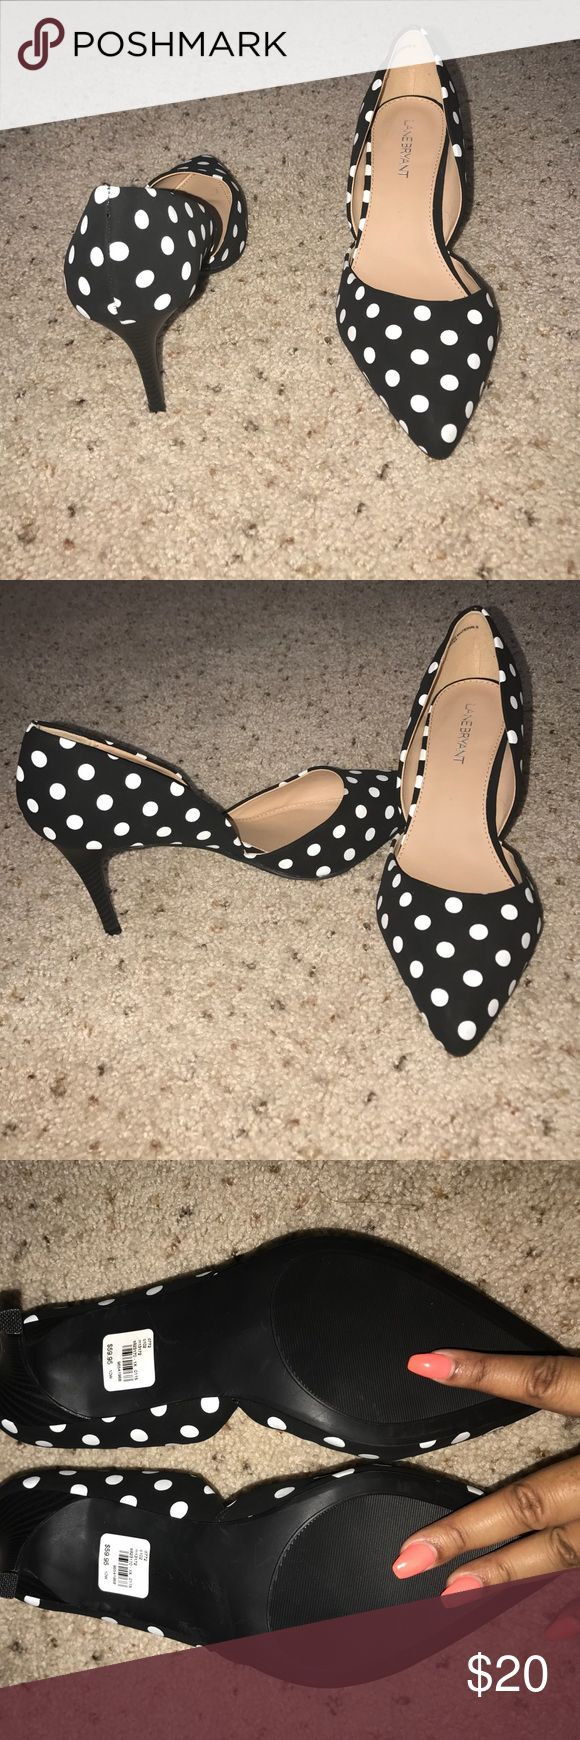 Layne Bryant Polka Dot Heels Brand new black and white pointy toe kitten heel. 10W Lane Bryant Shoes Heels